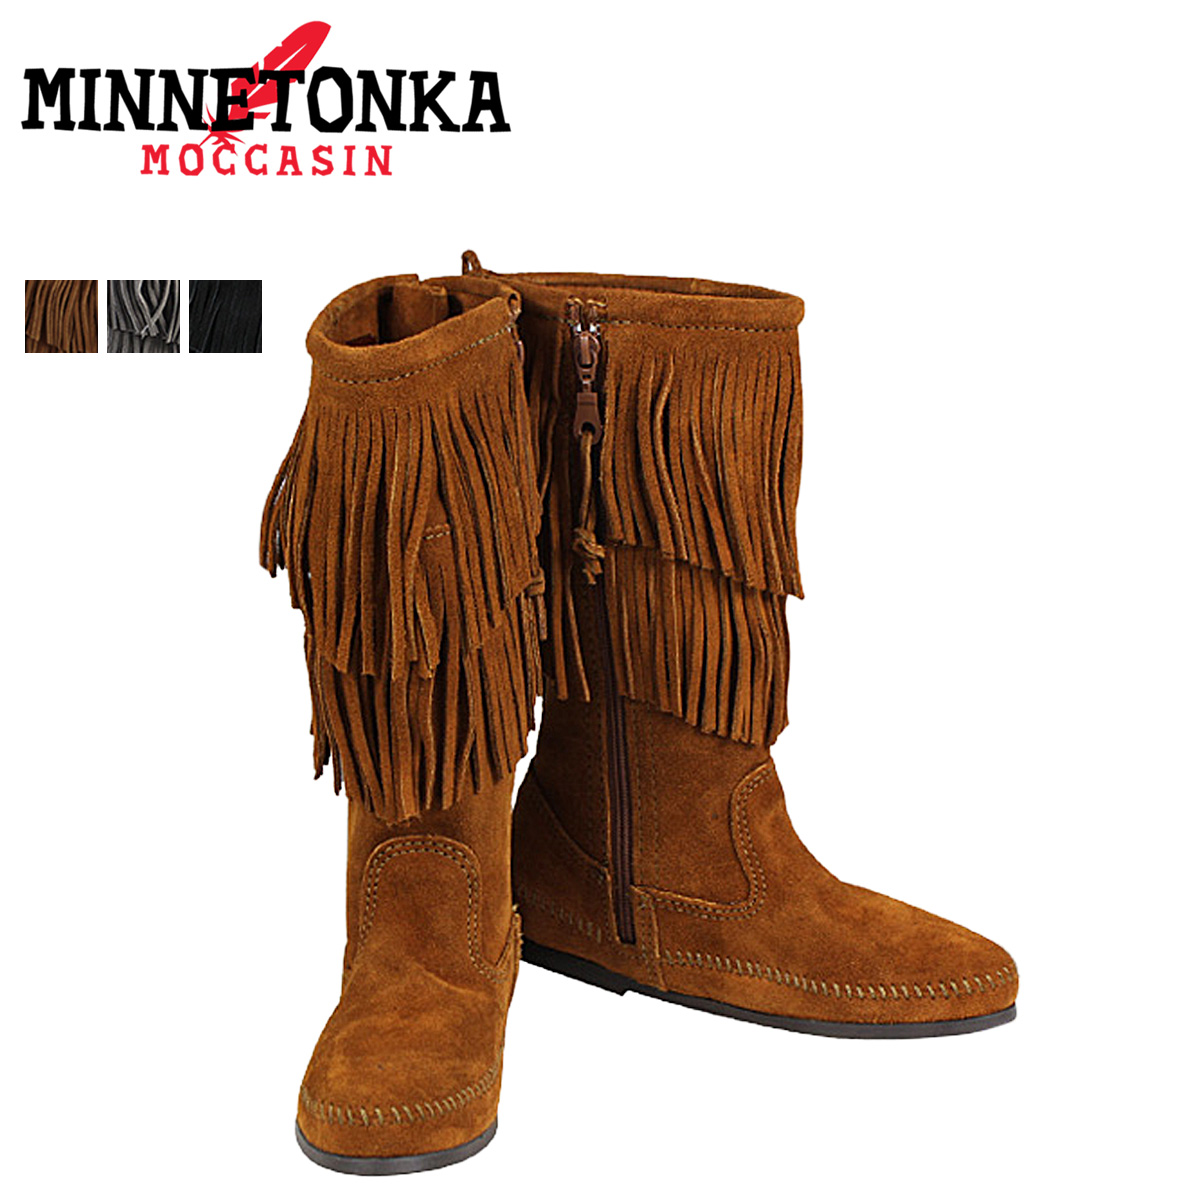 Sugar Online Shop | Rakuten Global Market: Minnetonka MINNETONKA ...